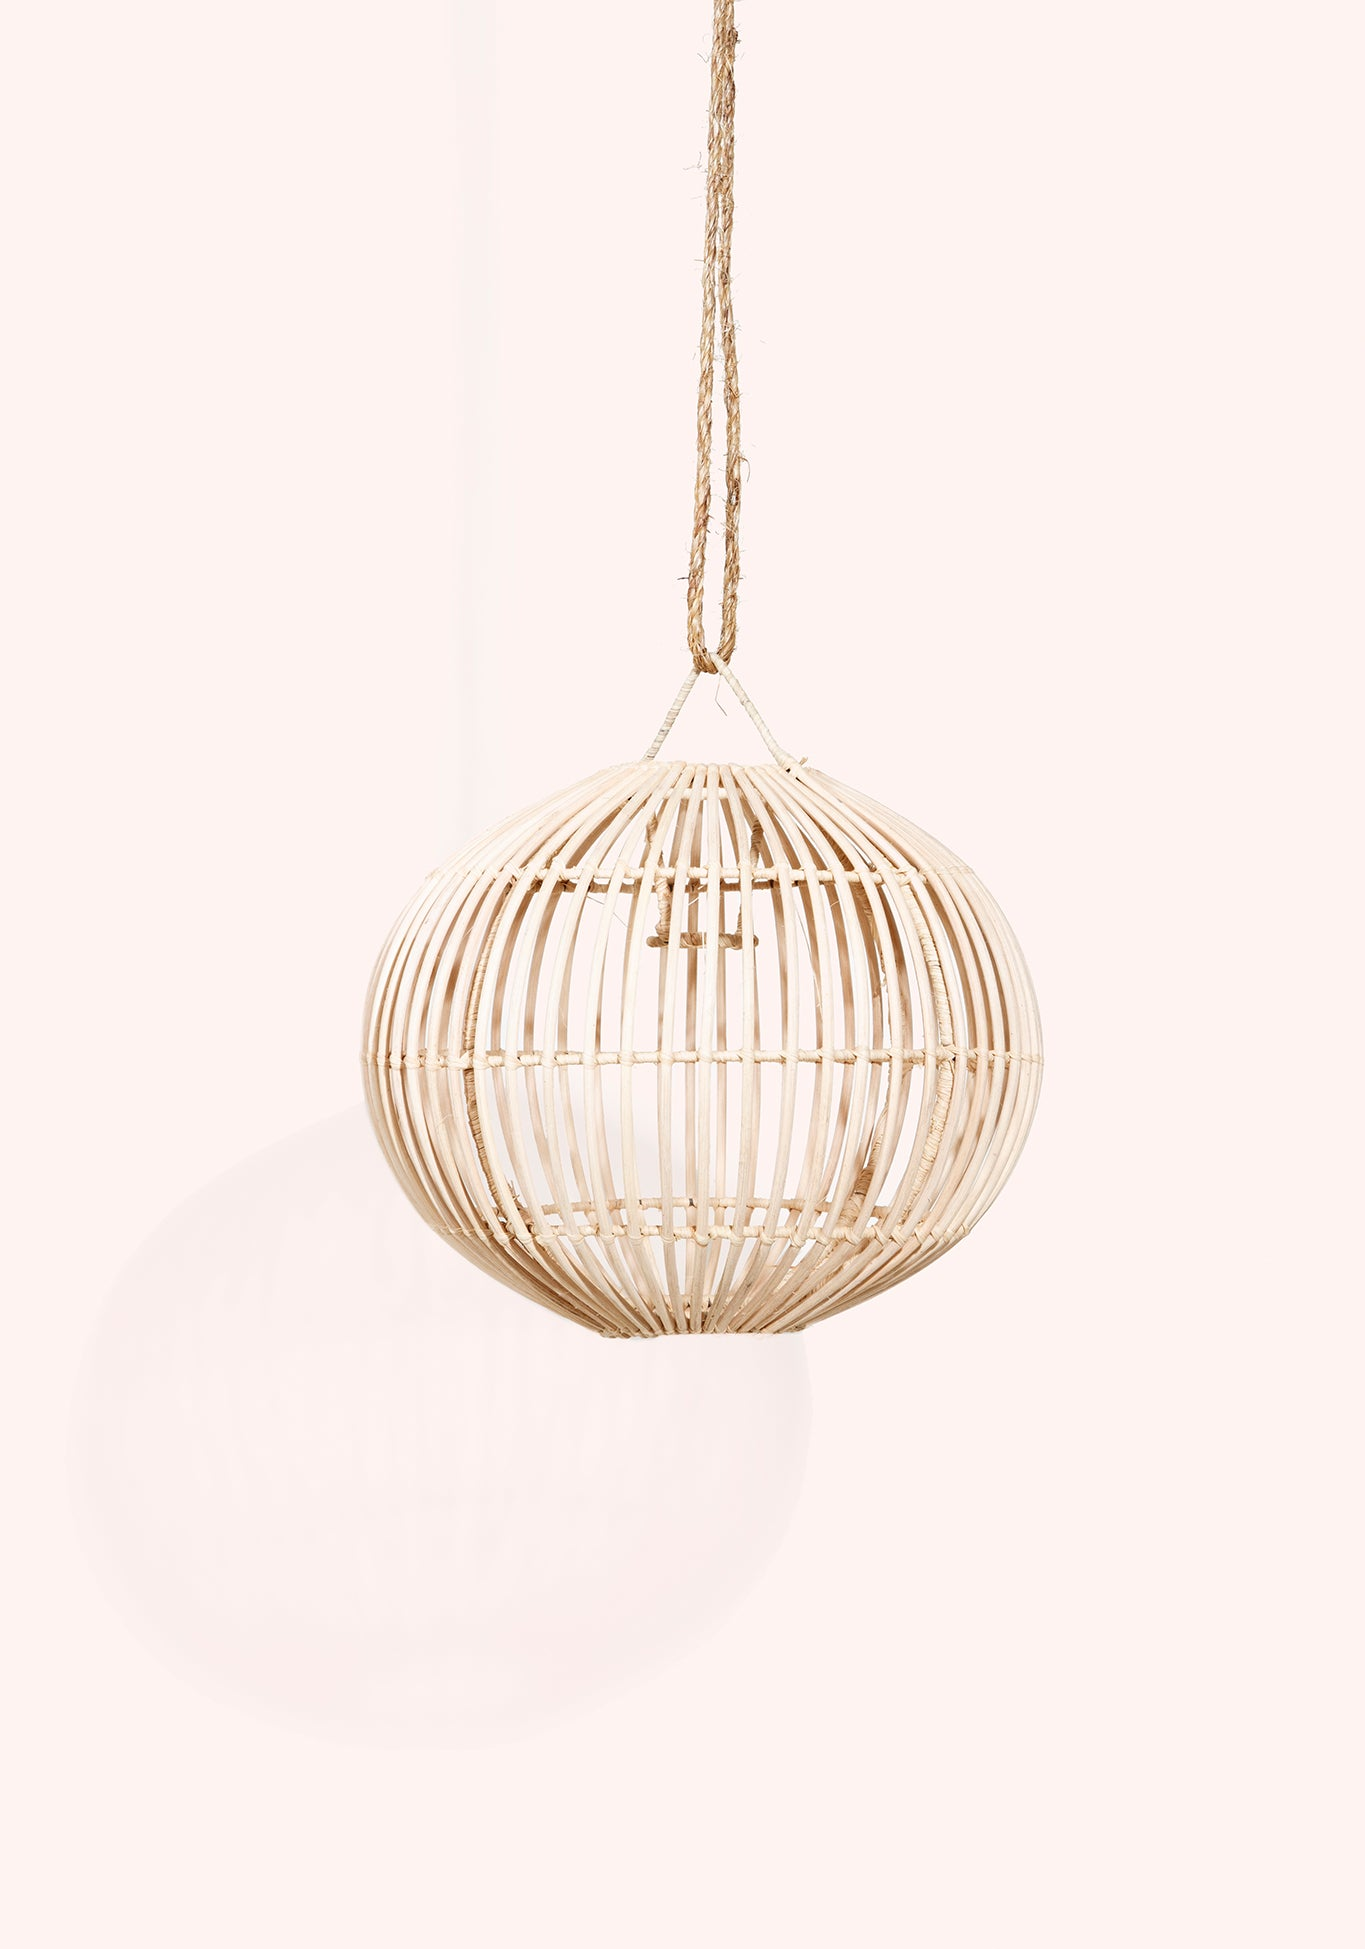 Rattan Light Pendant - Small 12'